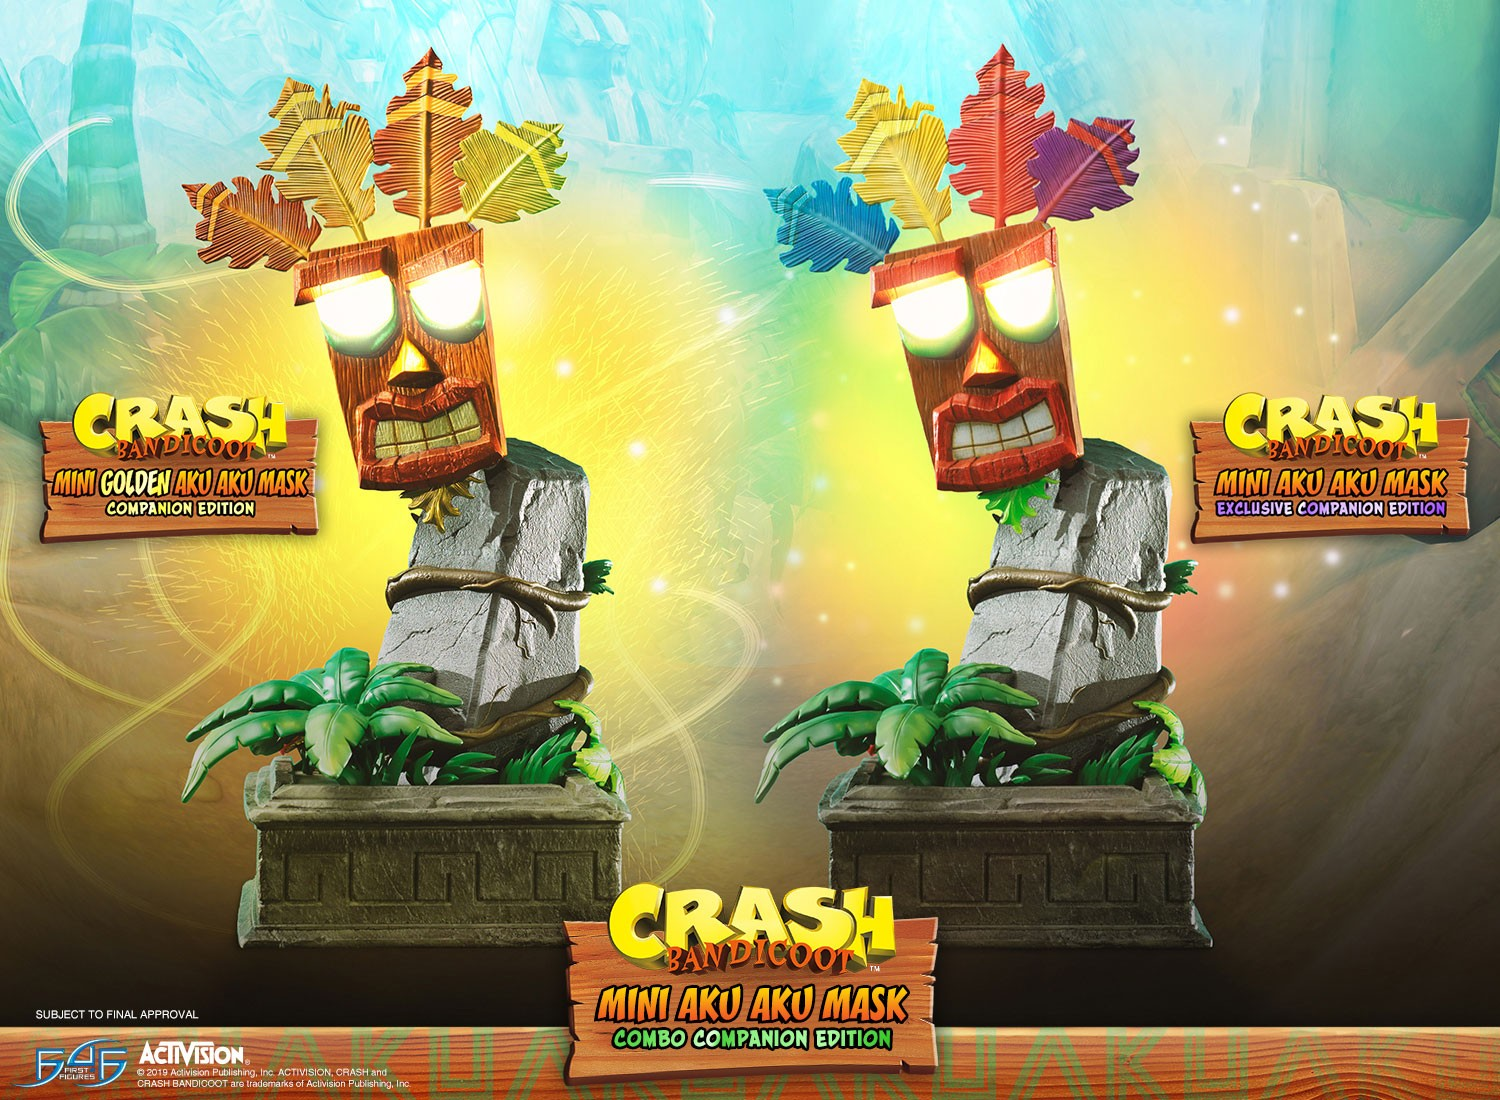 Crash Bandicoot™- Mini Aku Aku Mask Combo Companion Edition